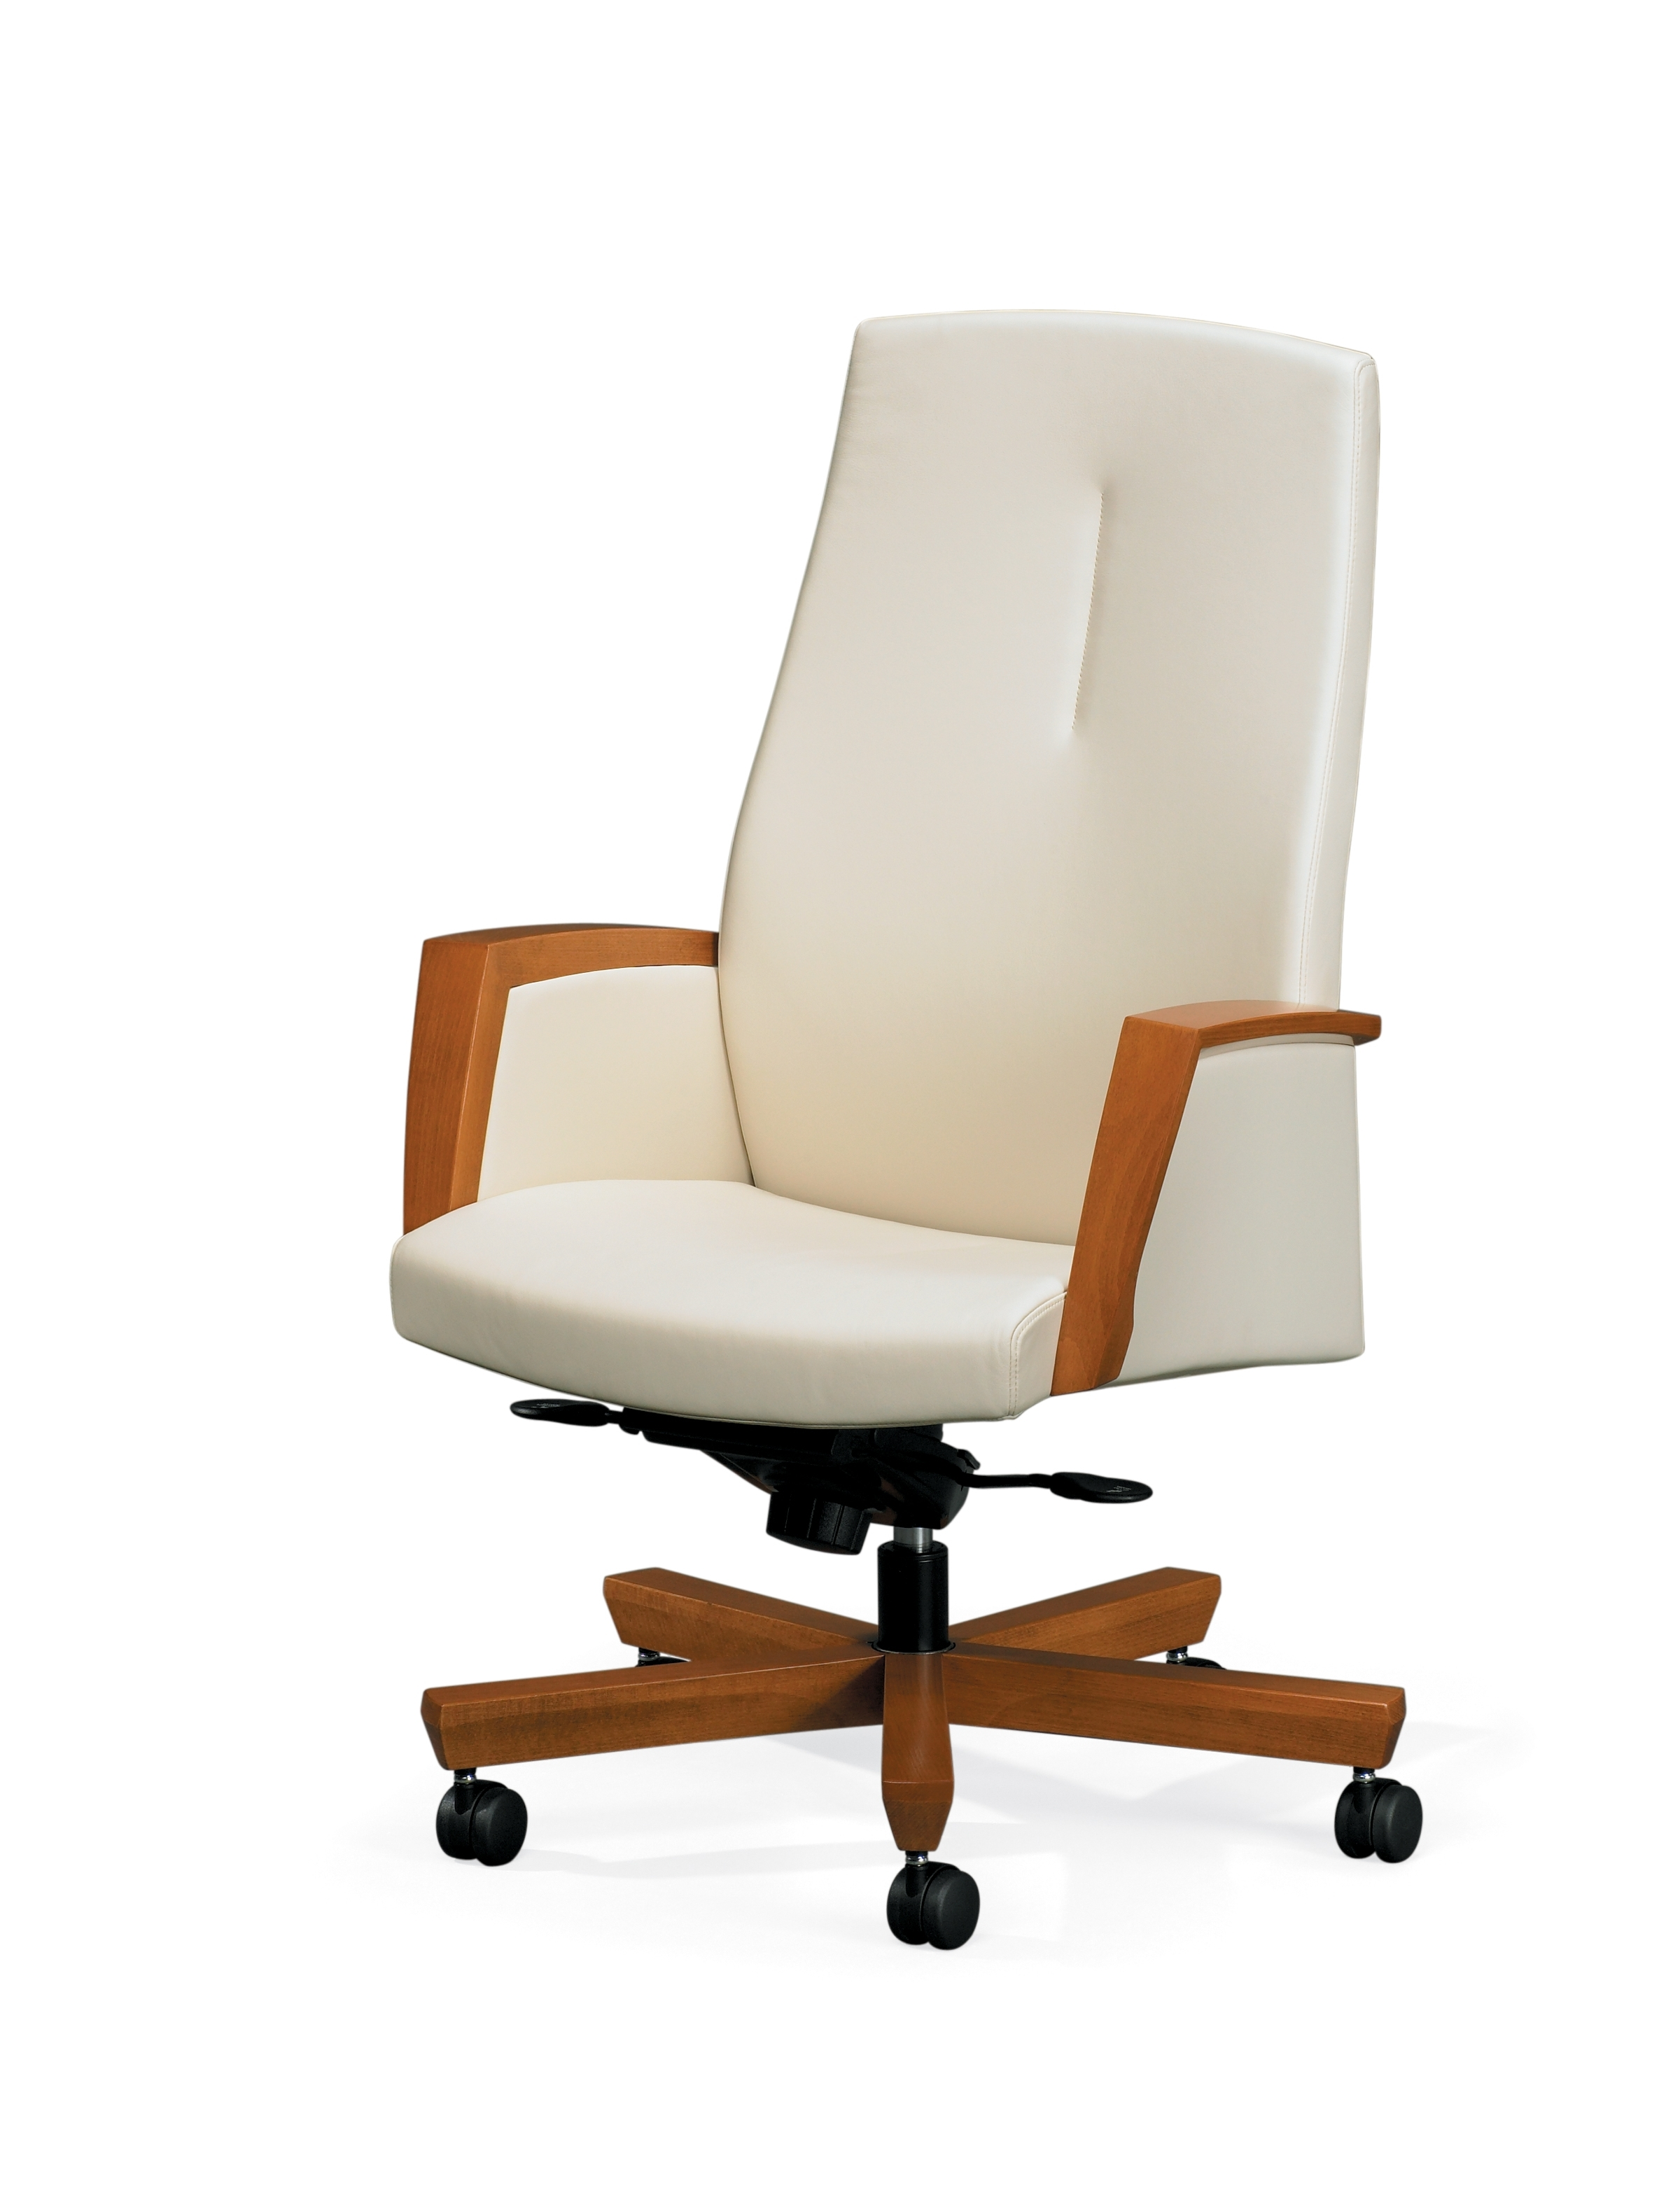 Widely Used Paoli Diverge Office Chair – Contemporay And Transitional Seating Pertaining To Leather Wood Executive Office Chairs (View 20 of 20)